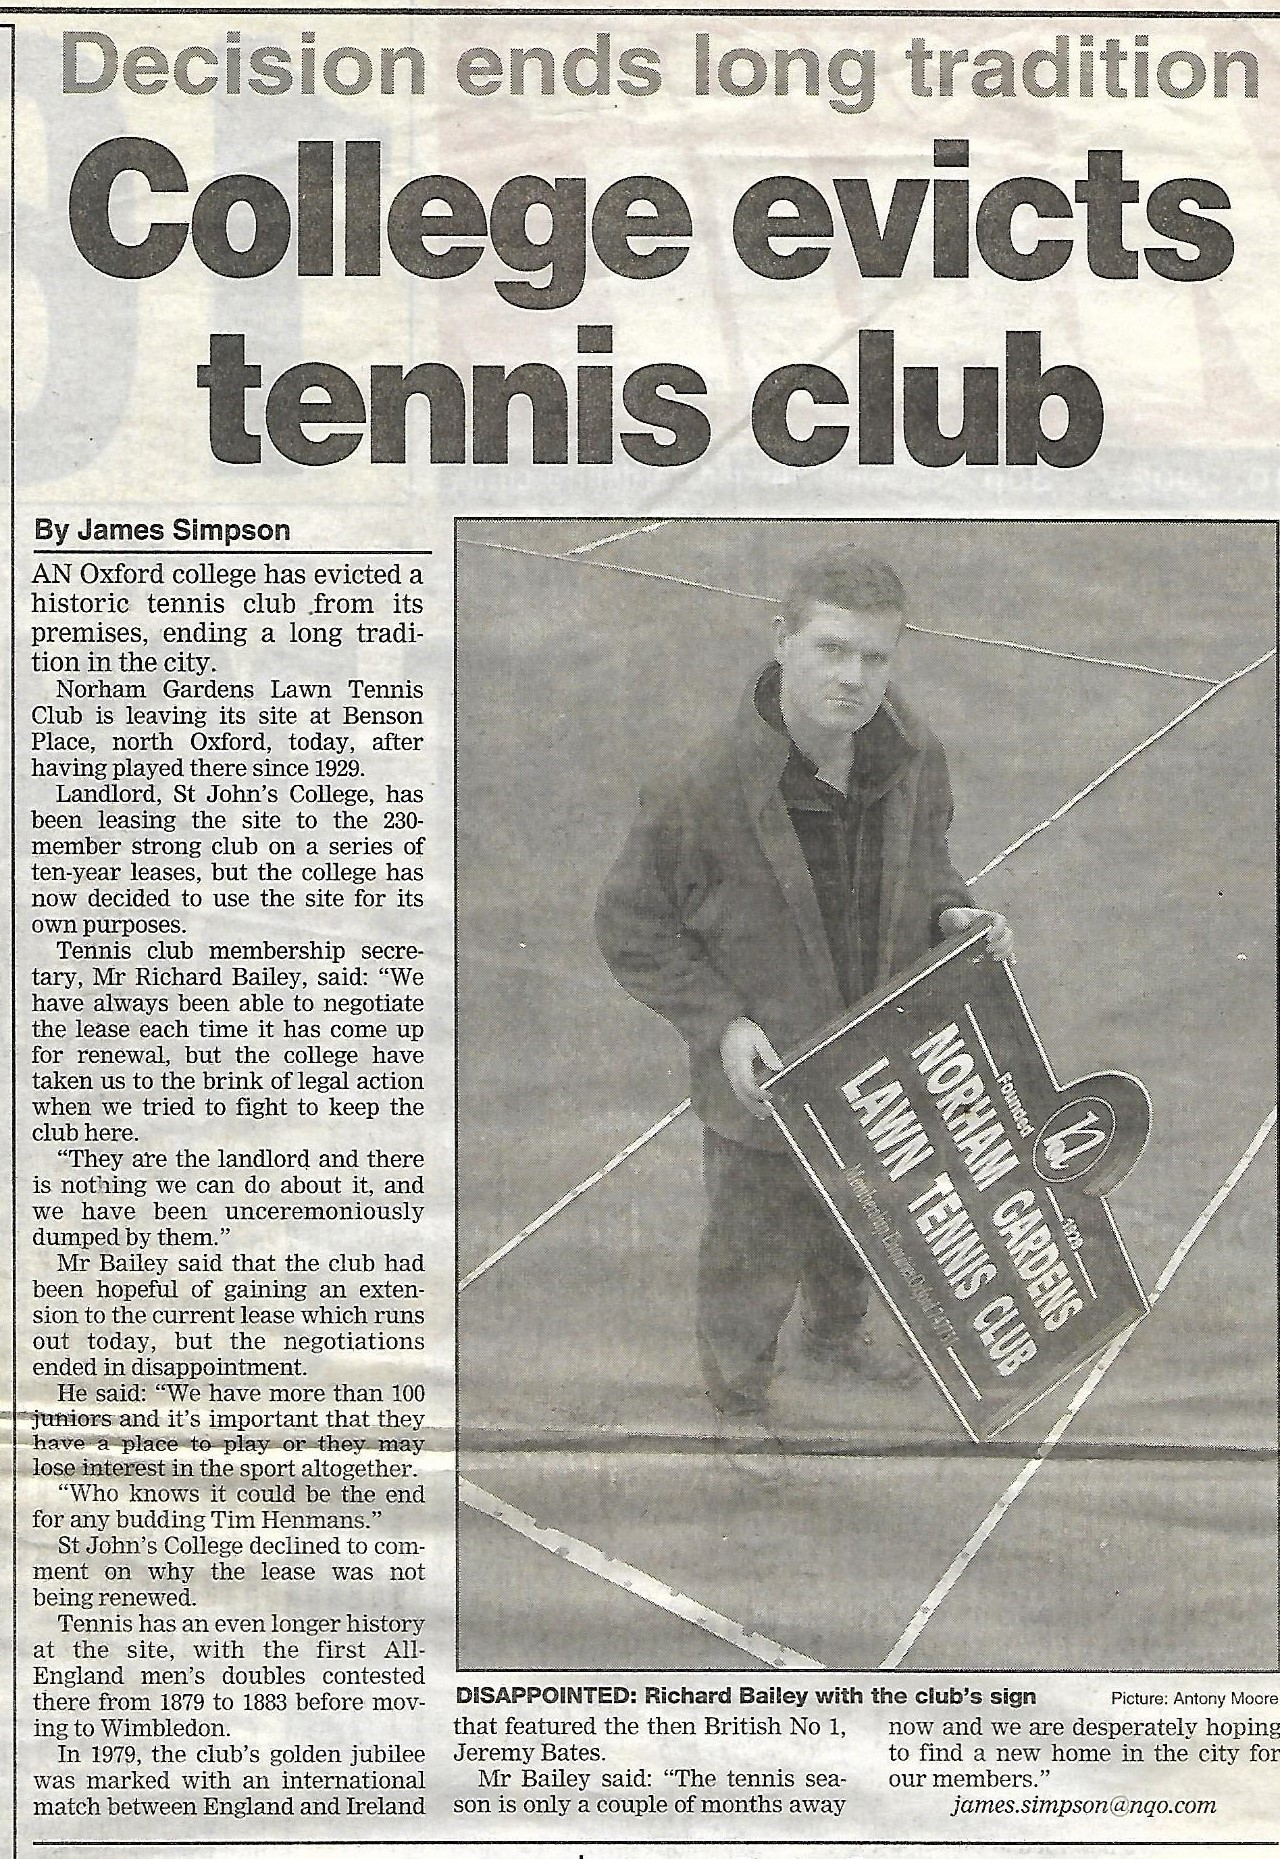 From the Oxford Mail of 10th January 2002.